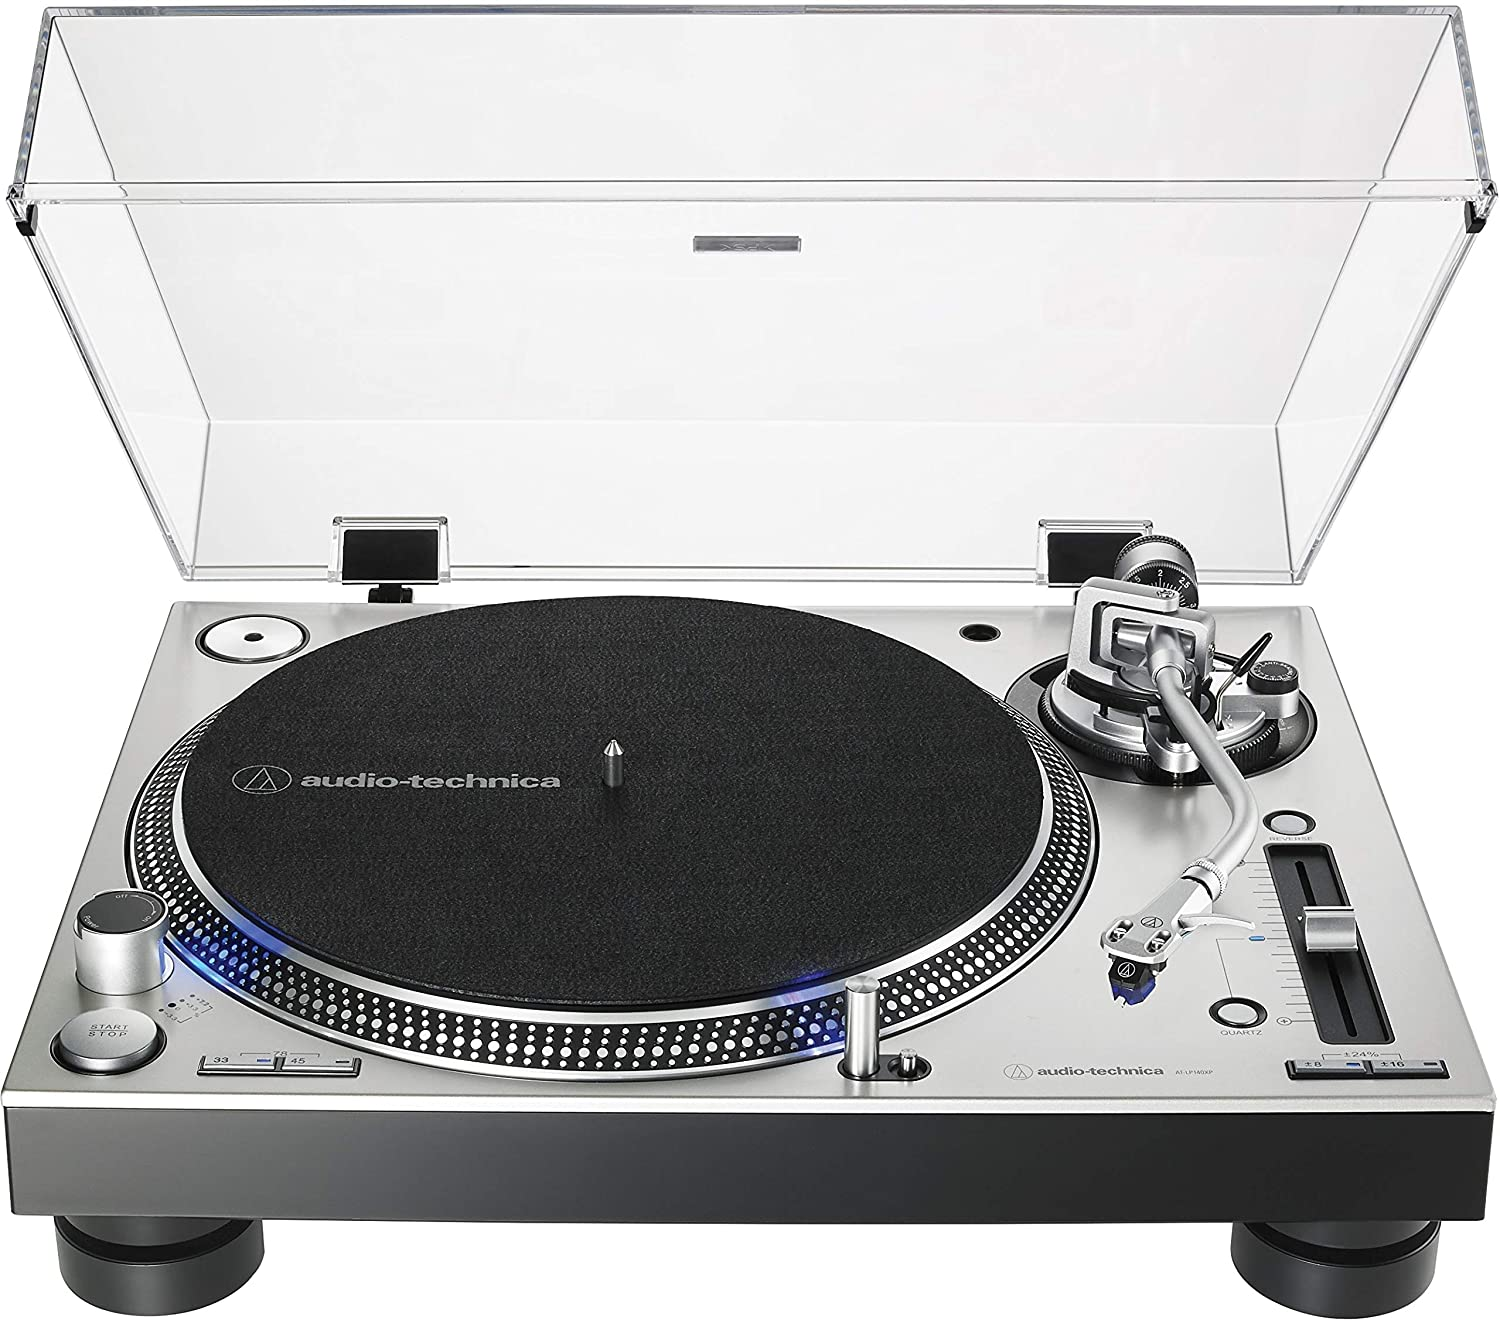 audio-technica-direct-drive-pro-dj-turntable-at-lp140xp-sv.jpeg